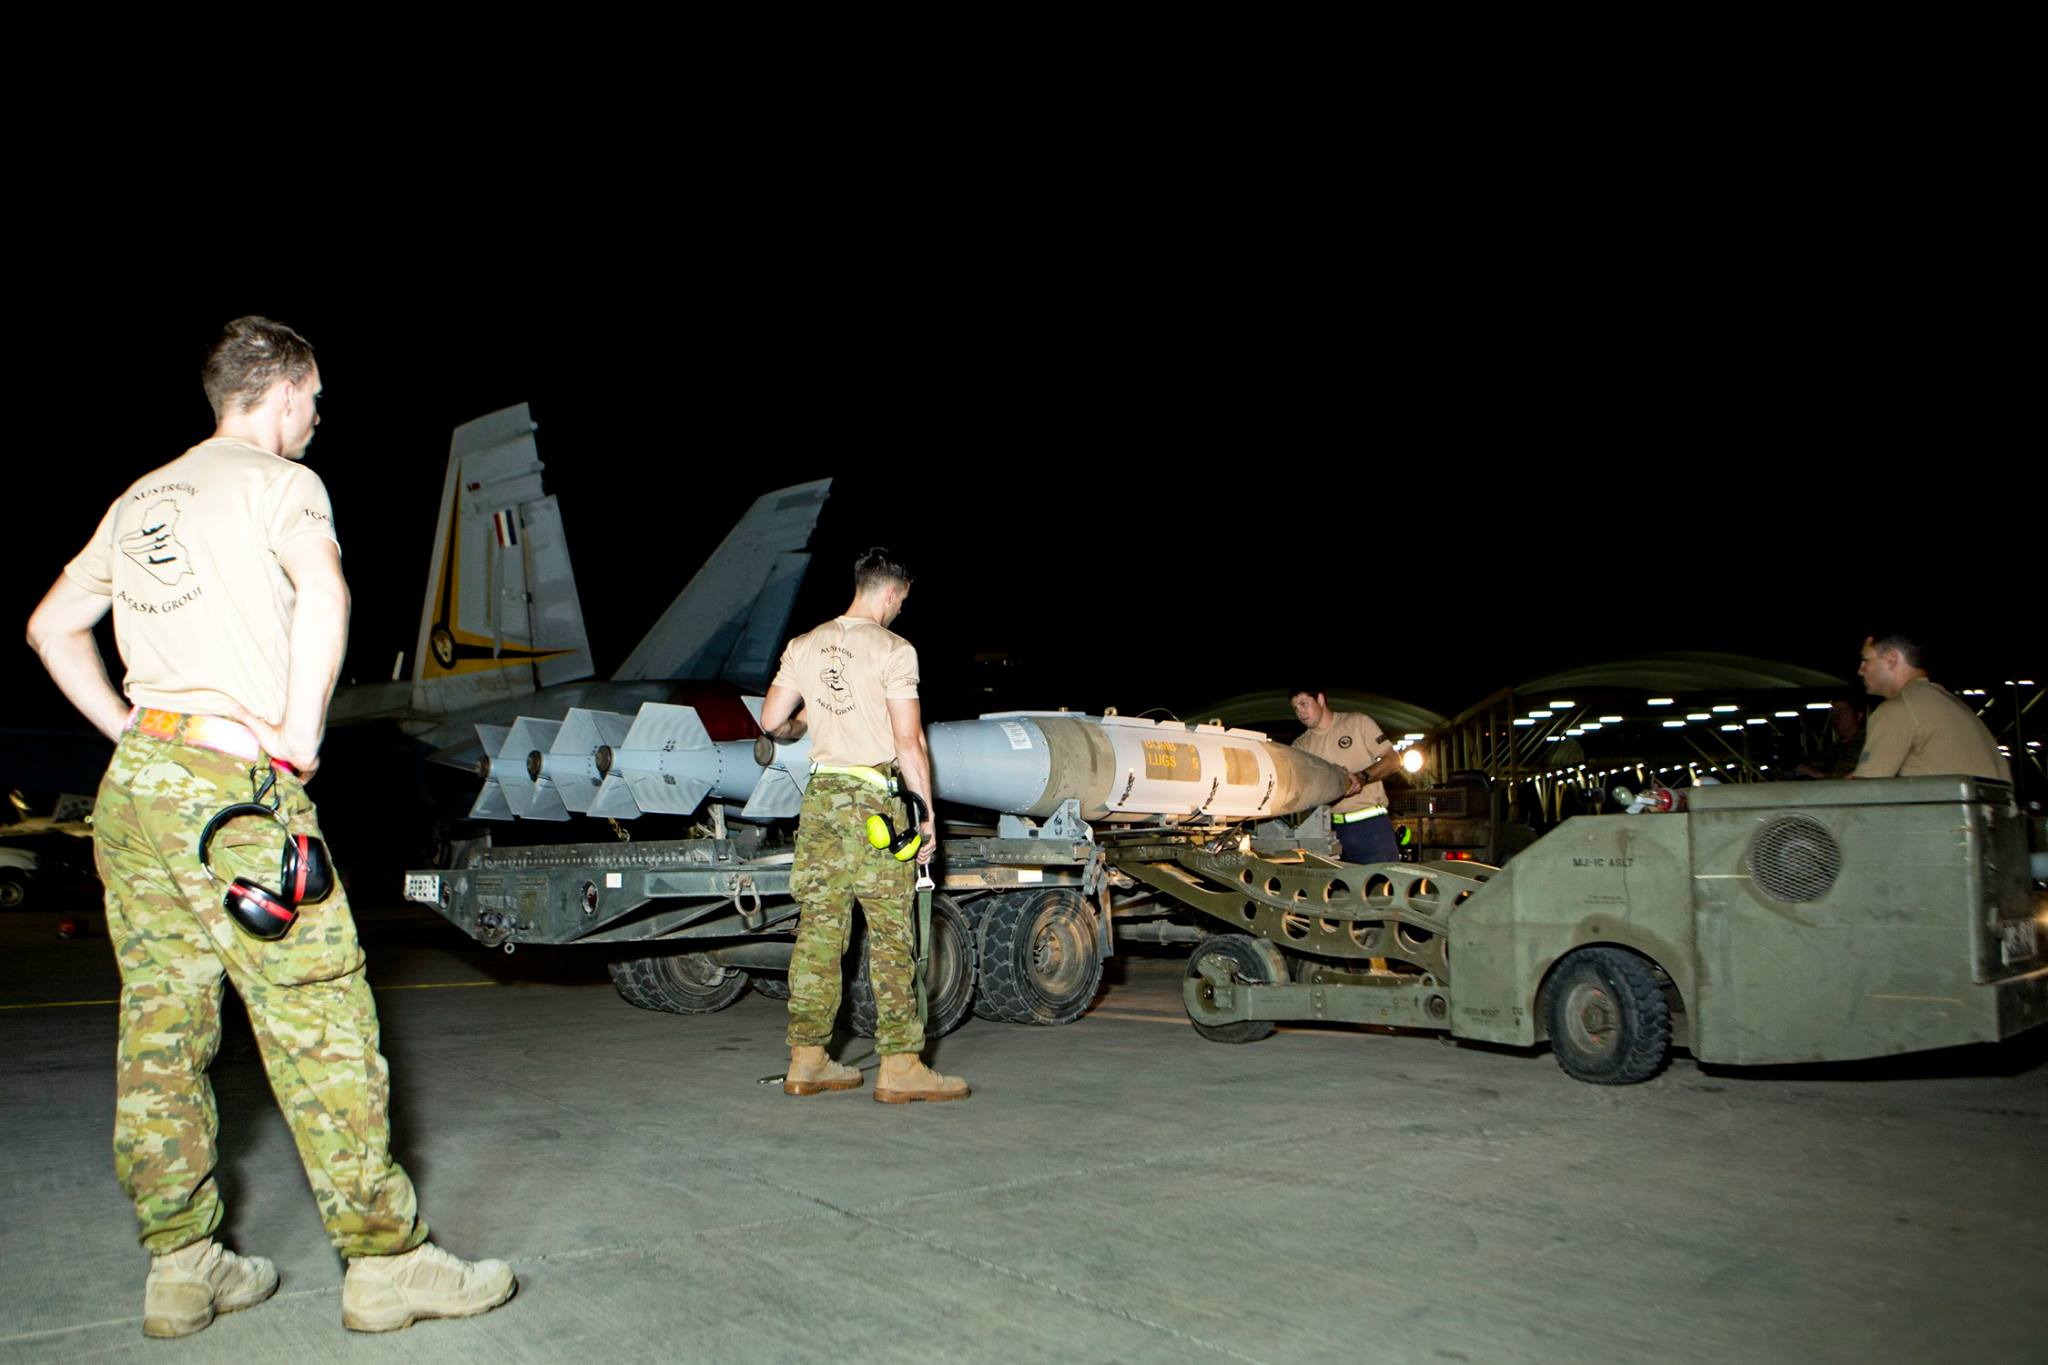 Australian armament personnel assemble and load weapons (image via CJTF OIR)